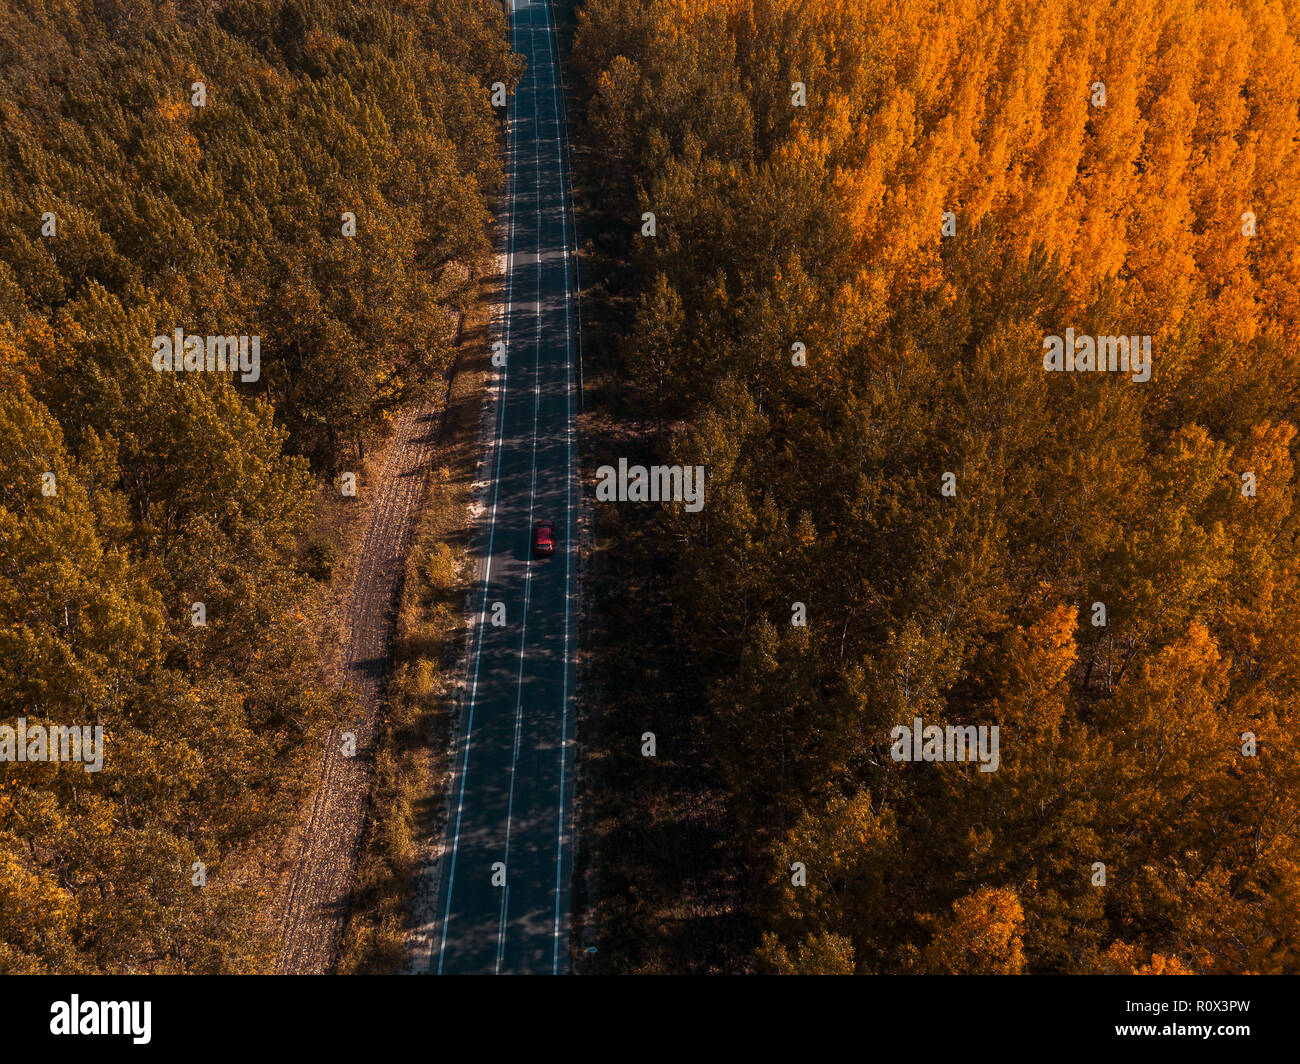 Aerial view of car on road through forest in autumn, drone point of view directly above - Stock Image